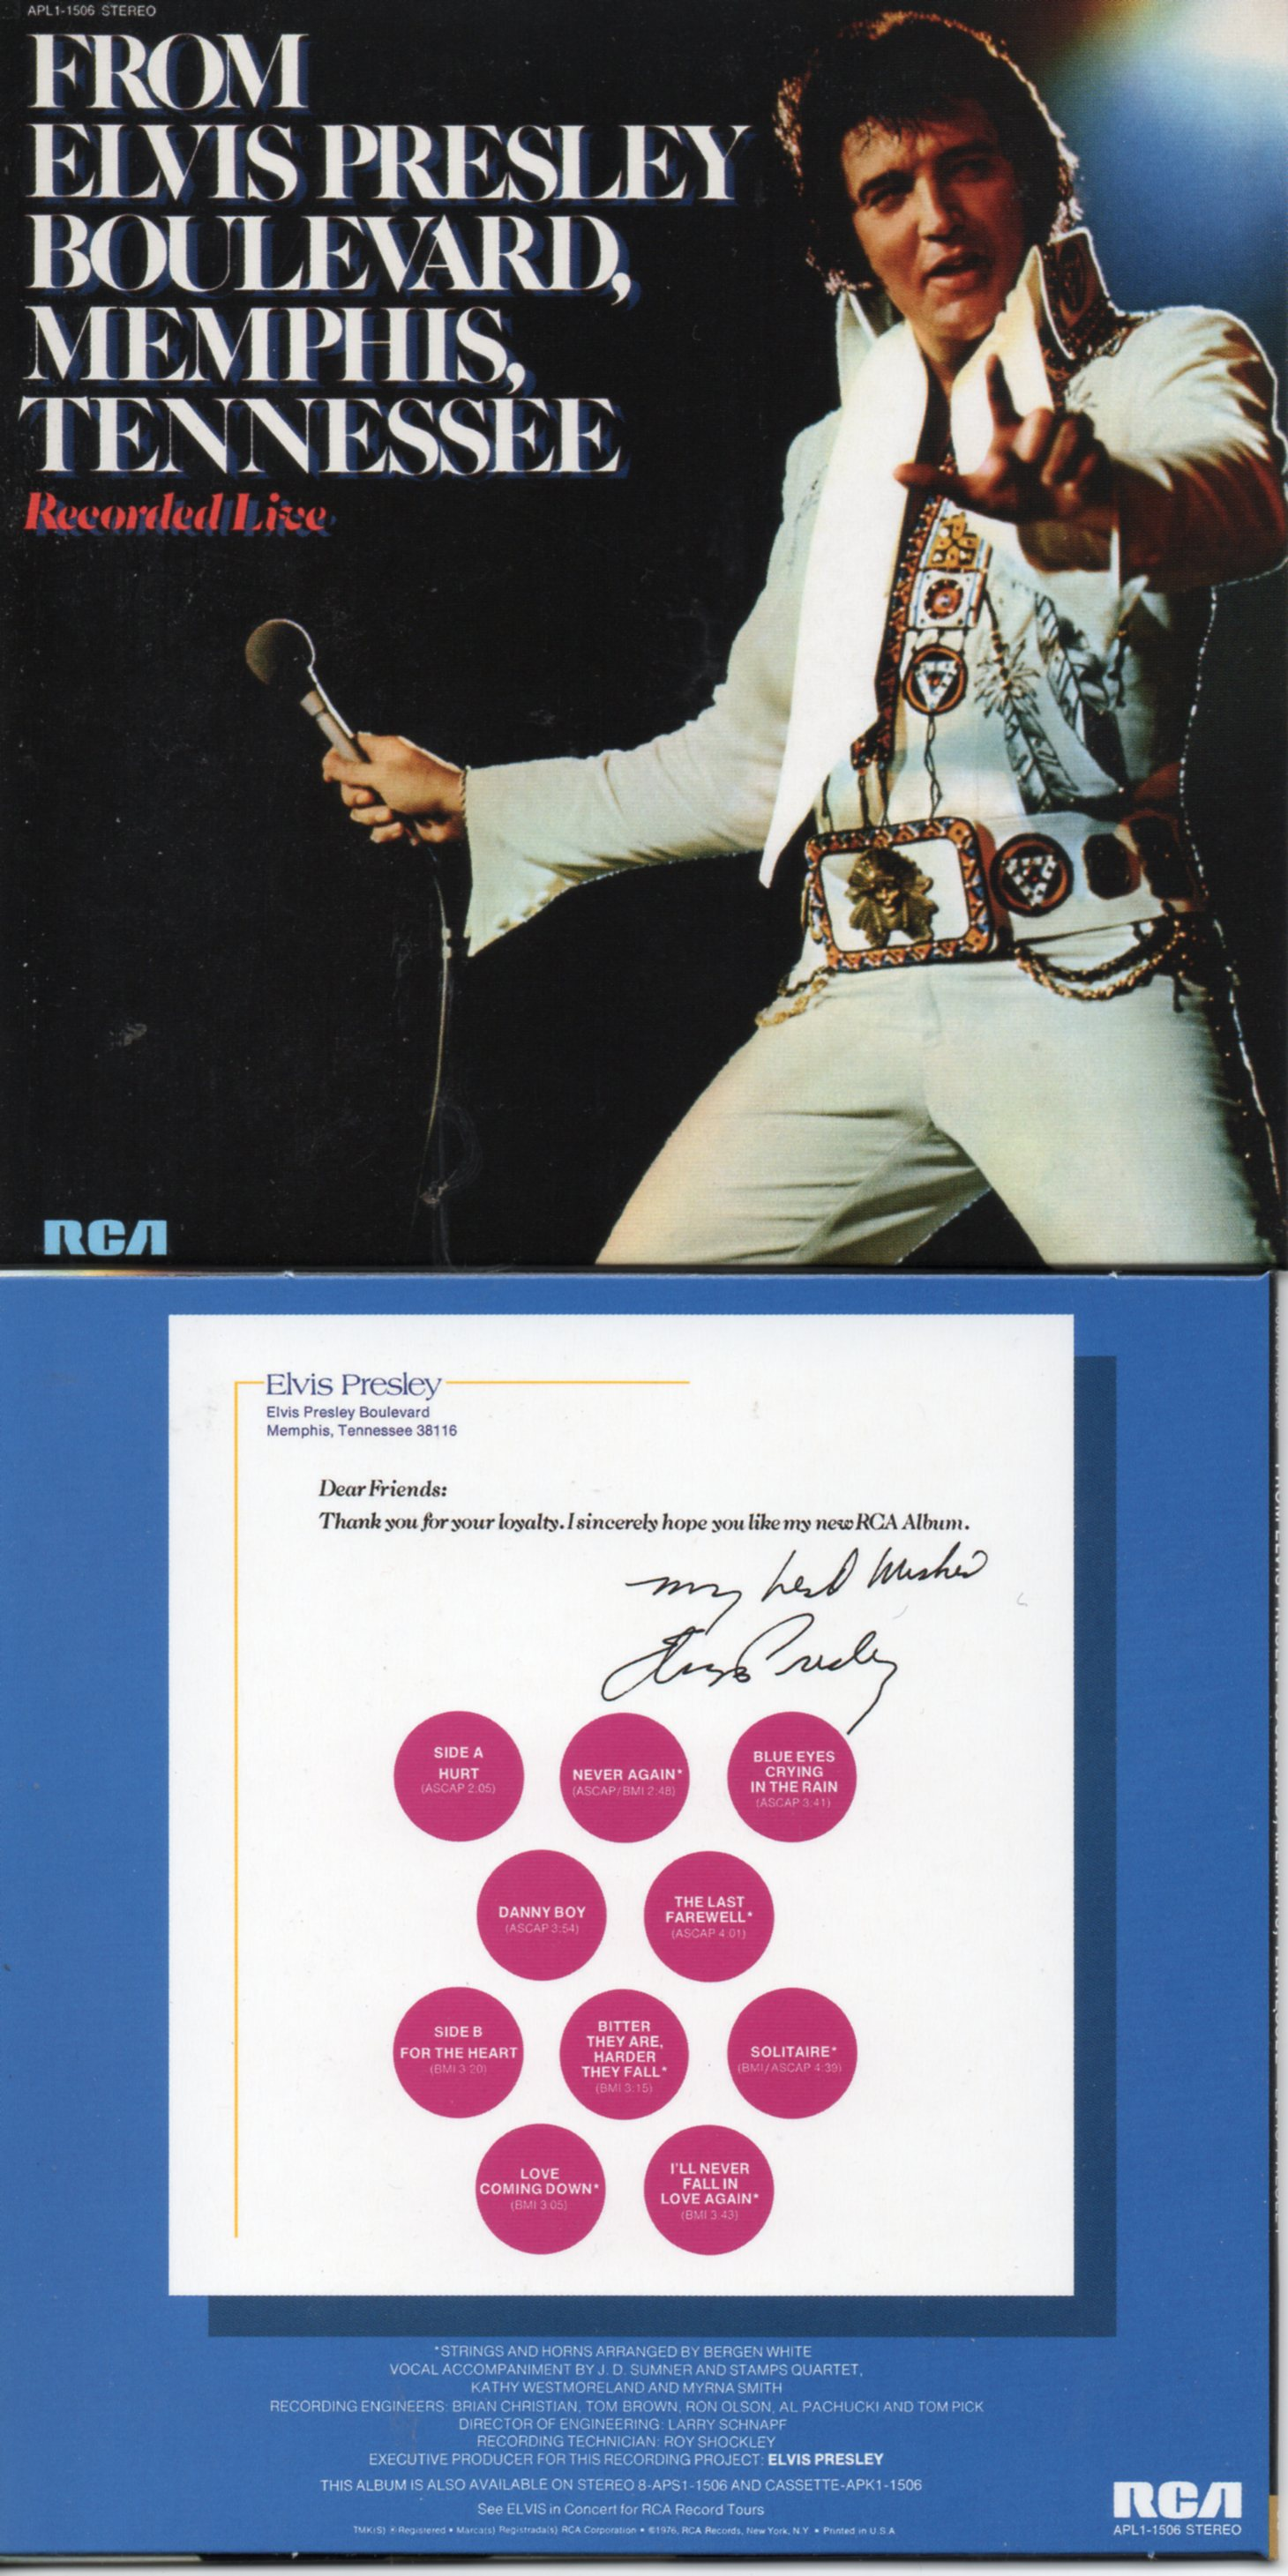 Elvis PRESLEY - From Elvis Presley Boulevard, Memphis, Tennessee (1976 - Mini Lp Replica - 10-track Card Sleeve)